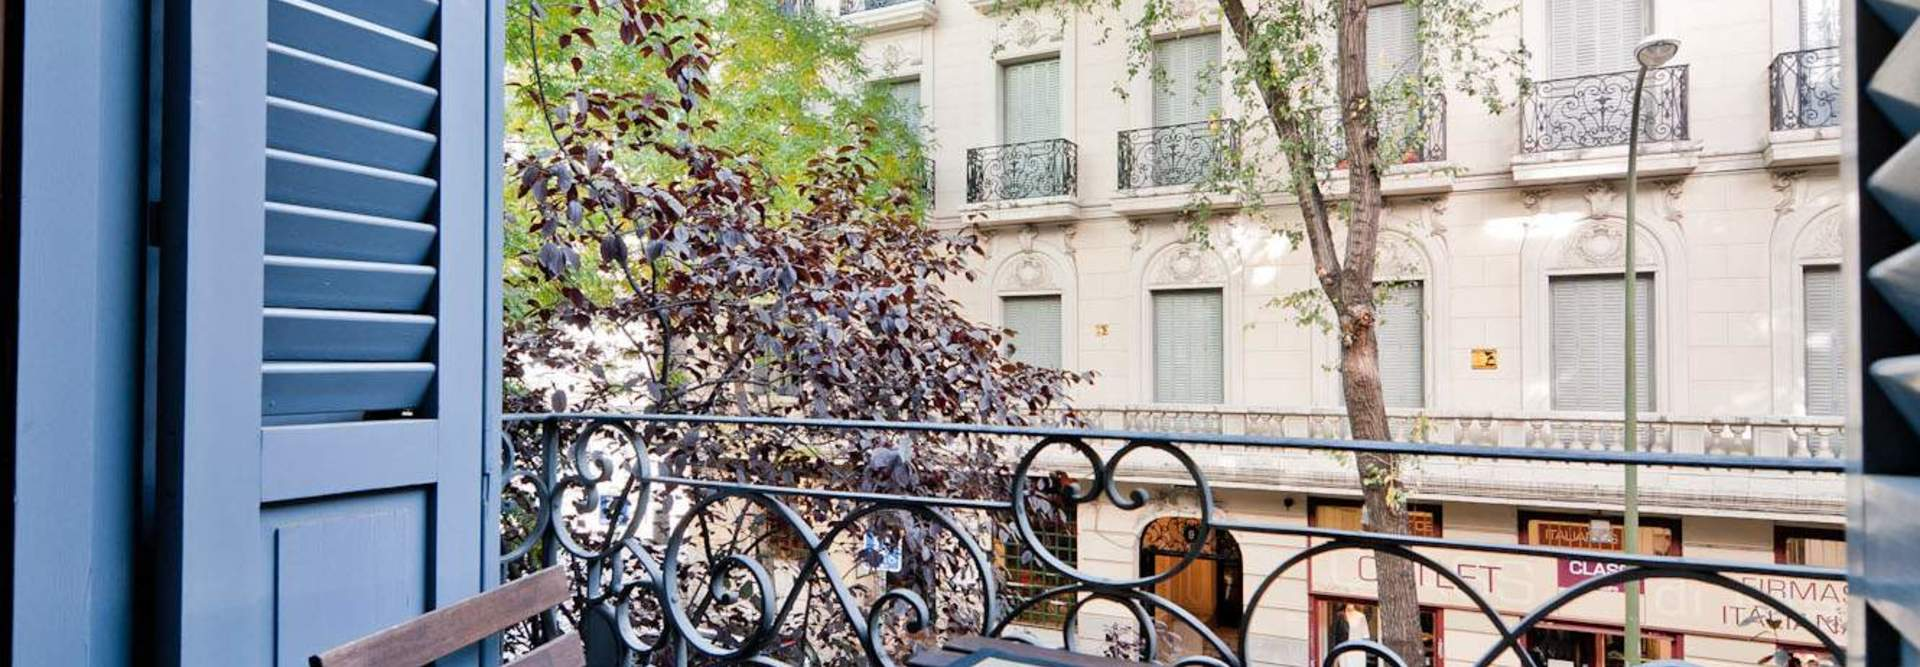 Home alquiler apartamento madrid centro mad4rent  31